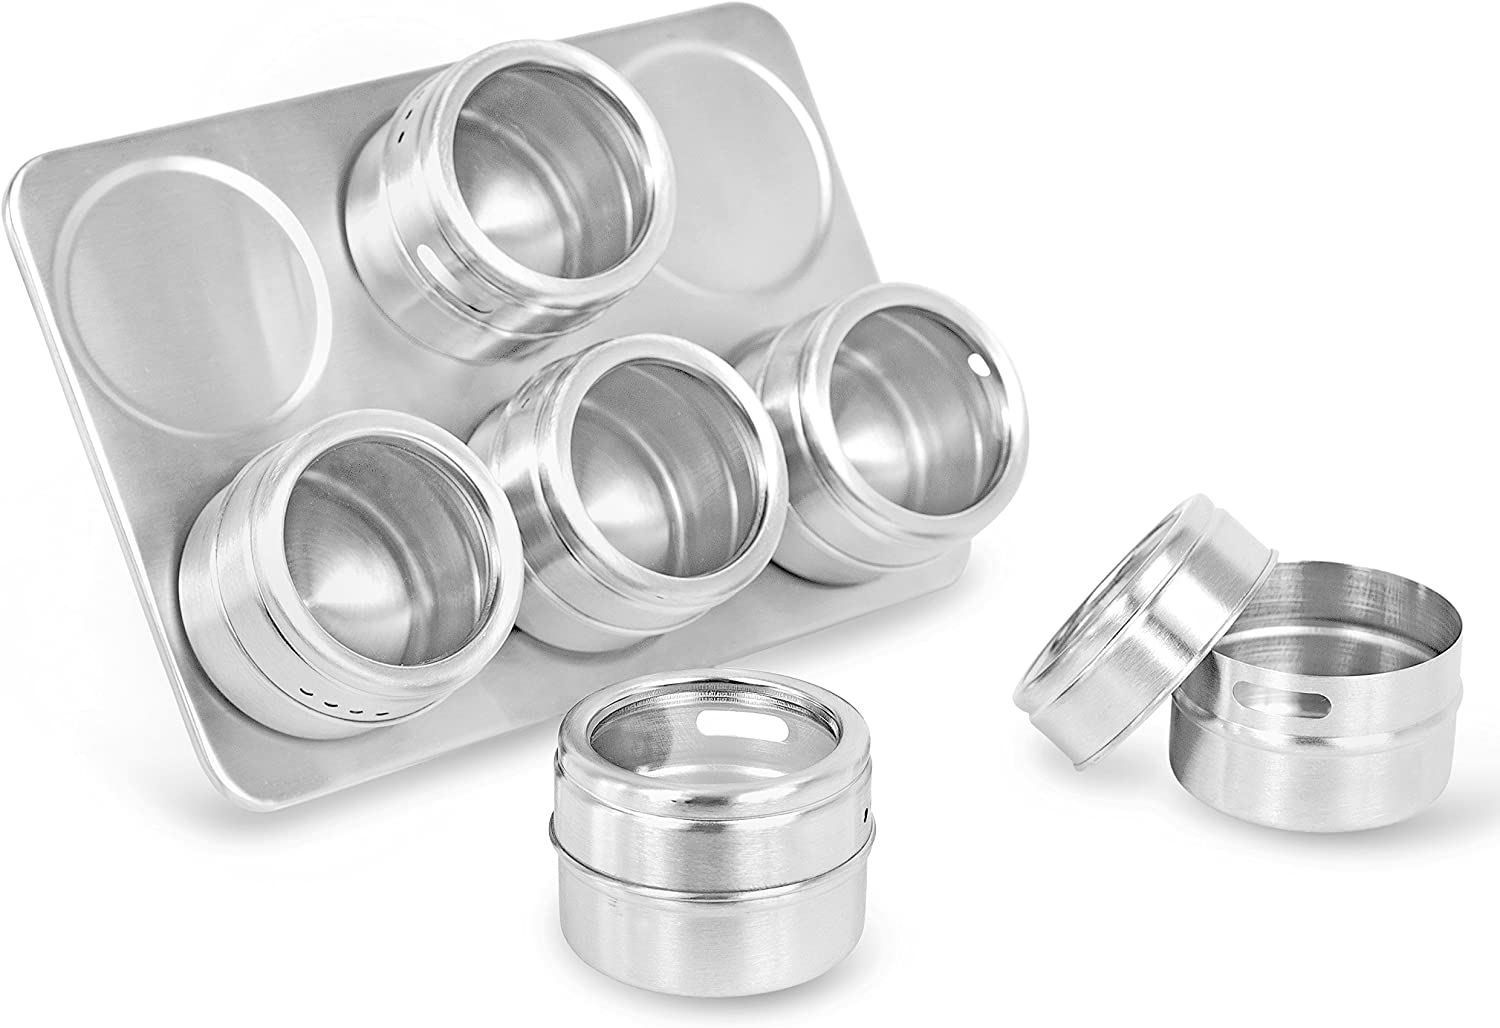 Internet's Best Magnetic Spice Rack - 6 Jars - Round Storage Spice Rack Set - Clear Sift and Pour Lid - Stainless Steel